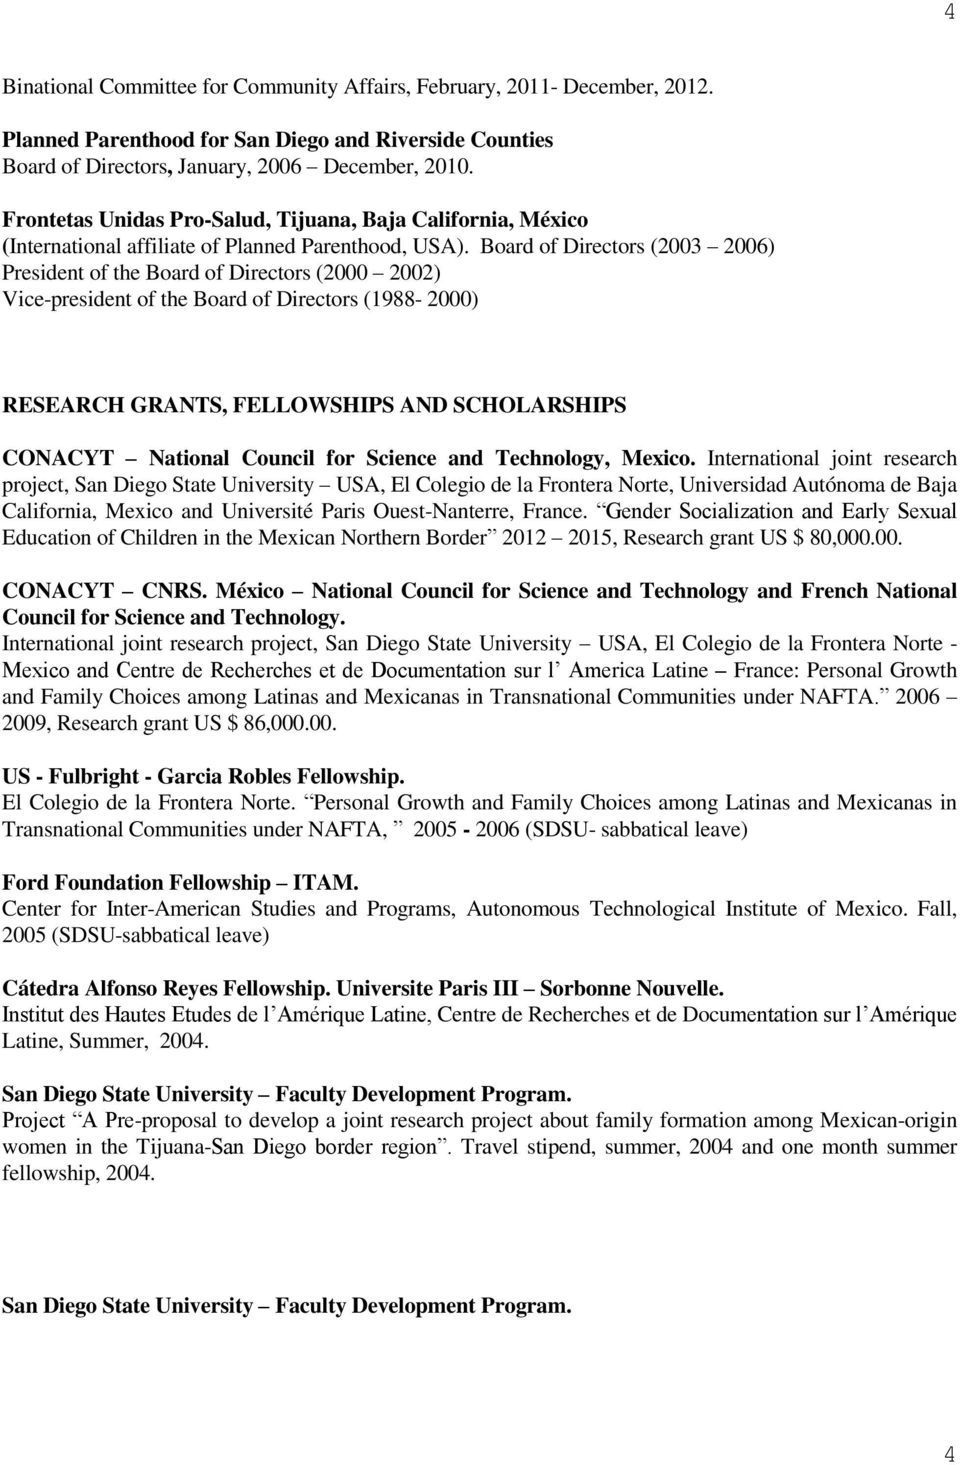 Board of Directors (2003 2006) President of the Board of Directors (2000 2002) Vice-president of the Board of Directors (1988-2000) RESEARCH GRANTS, FELLOWSHIPS AND SCHOLARSHIPS CONACYT National